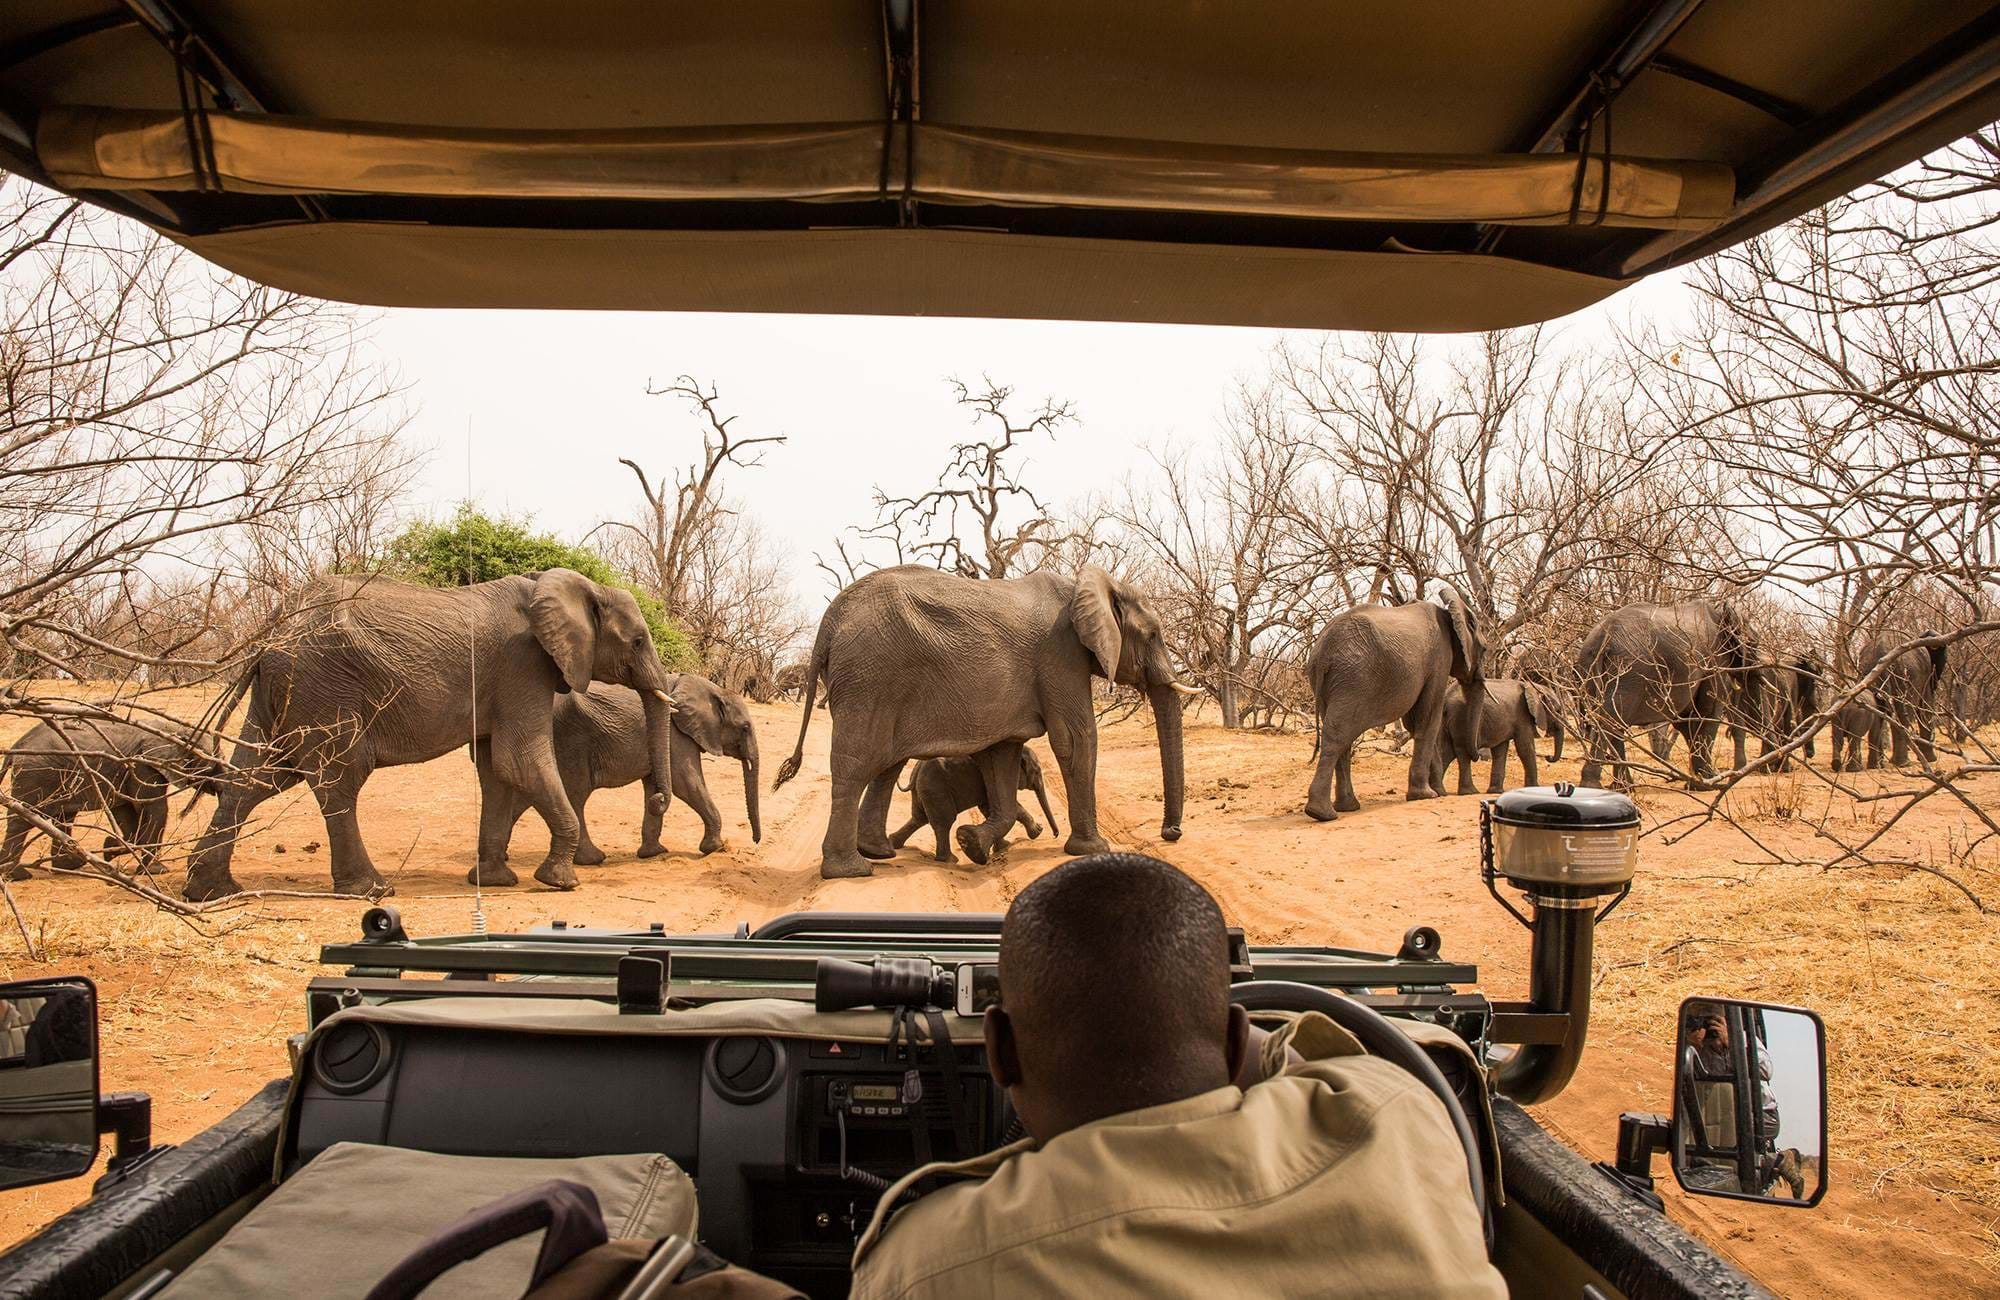 botswana-chobe-nationalpark-elephants-crossing-safari-road